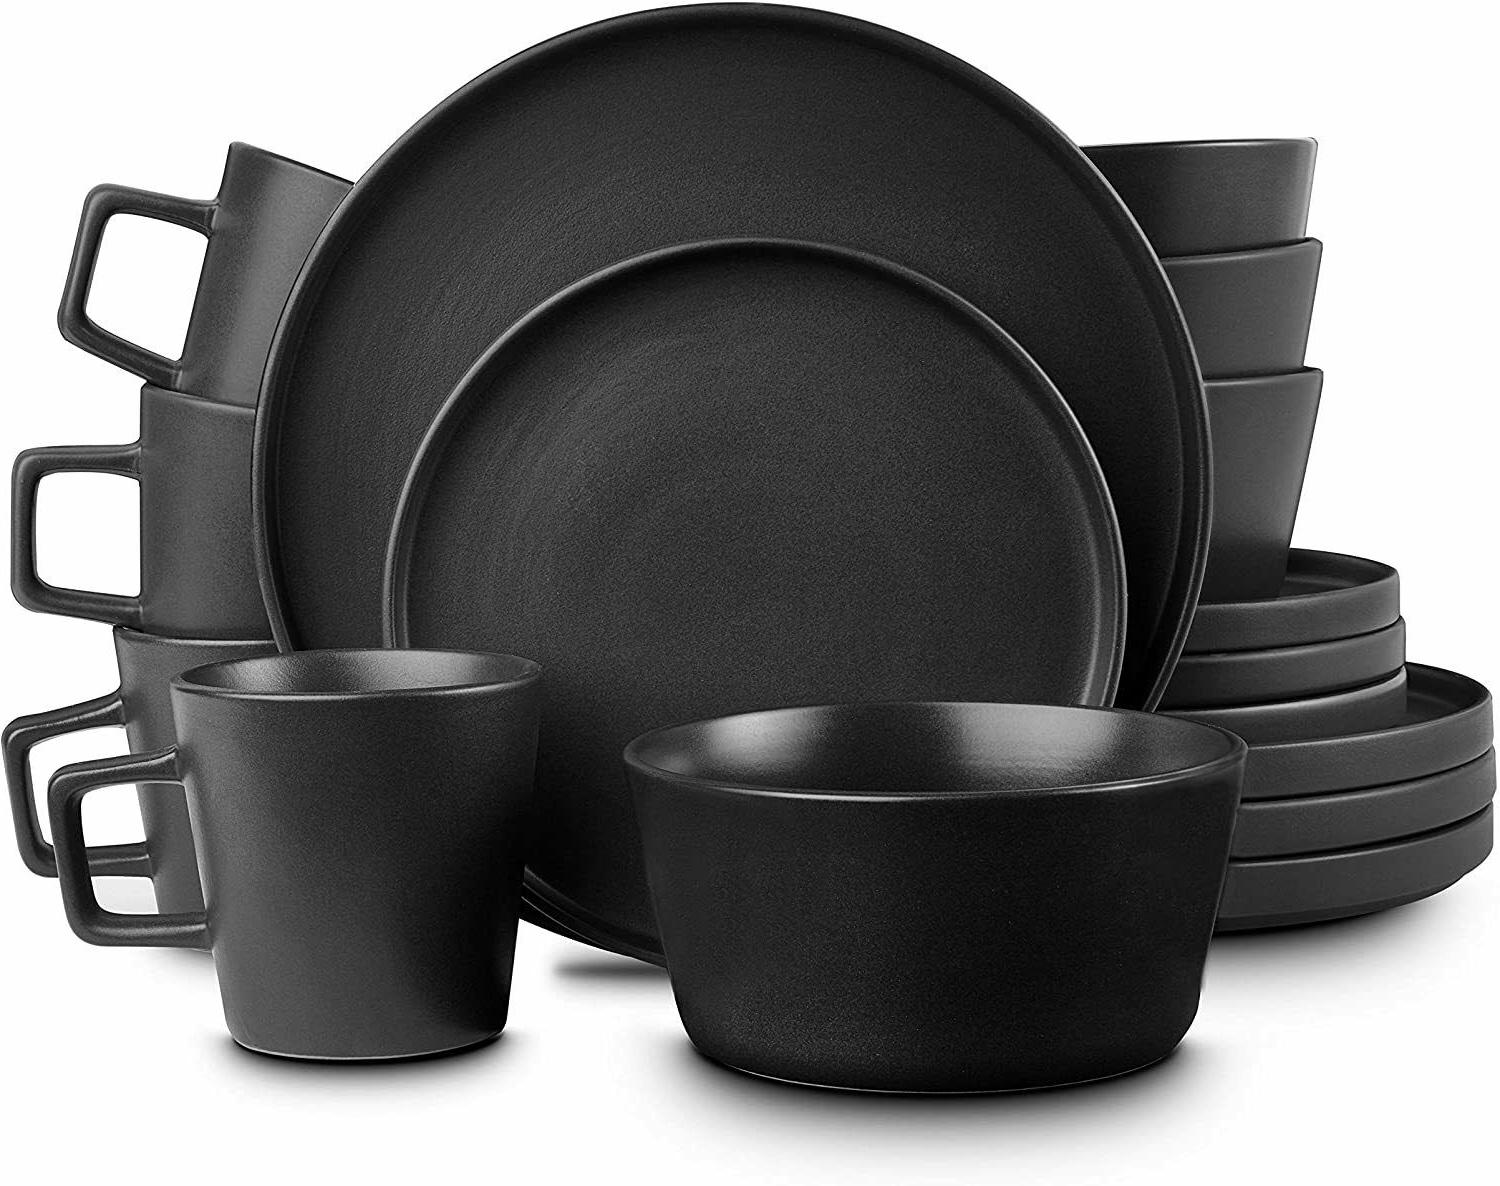 coupe dinnerware set service for 4 black